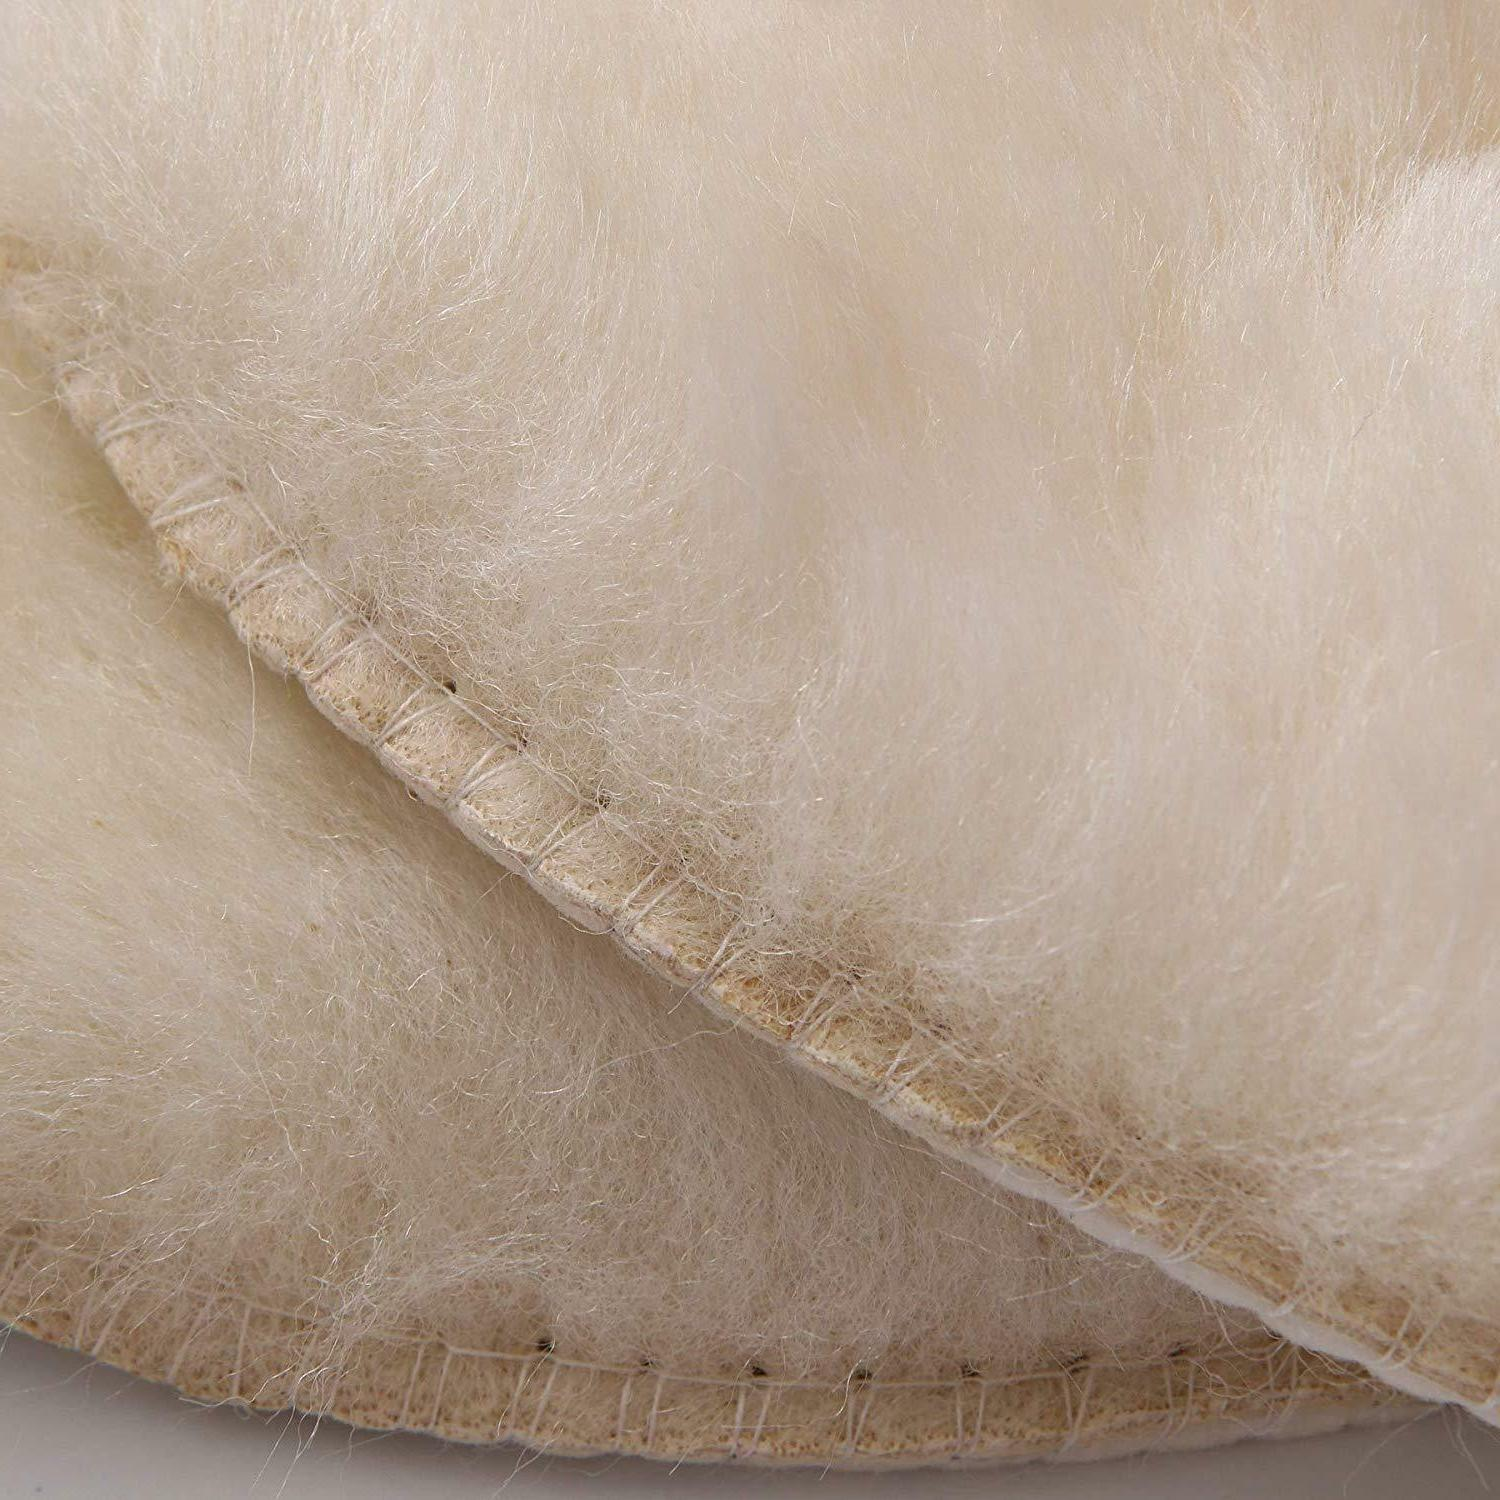 Hee Sheepskin Warm Thick Fur Cozy Shoes and Men